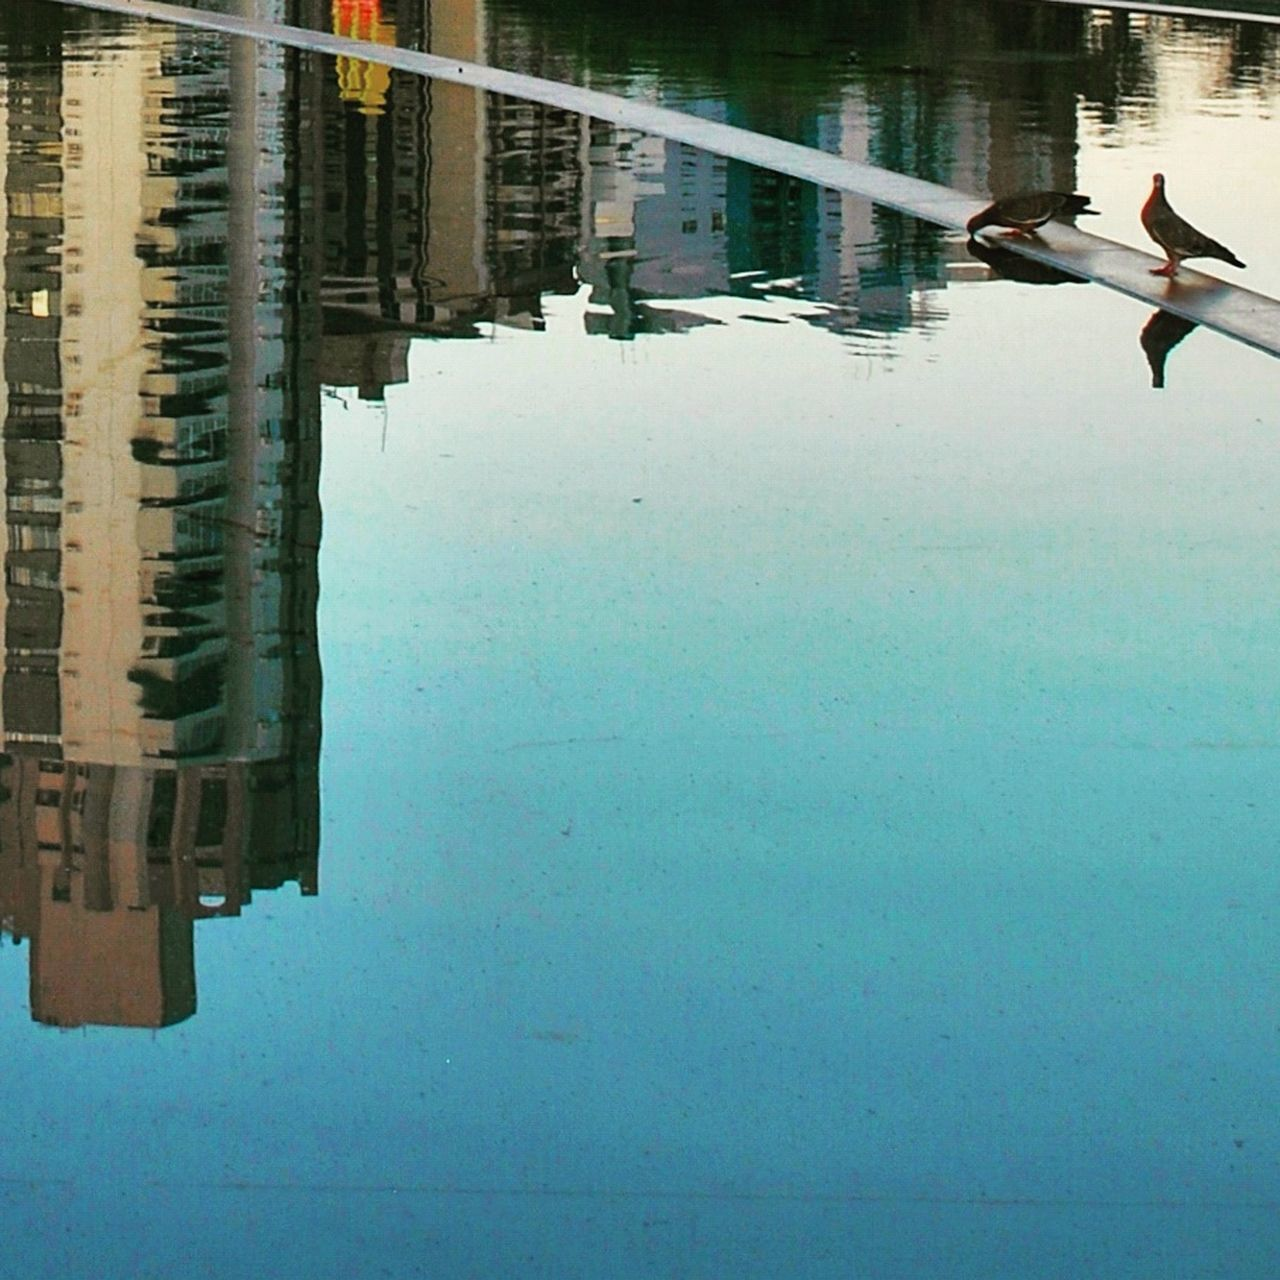 reflection, water, day, outdoors, architecture, animal themes, built structure, animals in the wild, waterfront, nature, building exterior, no people, bird, sky, beauty in nature, city